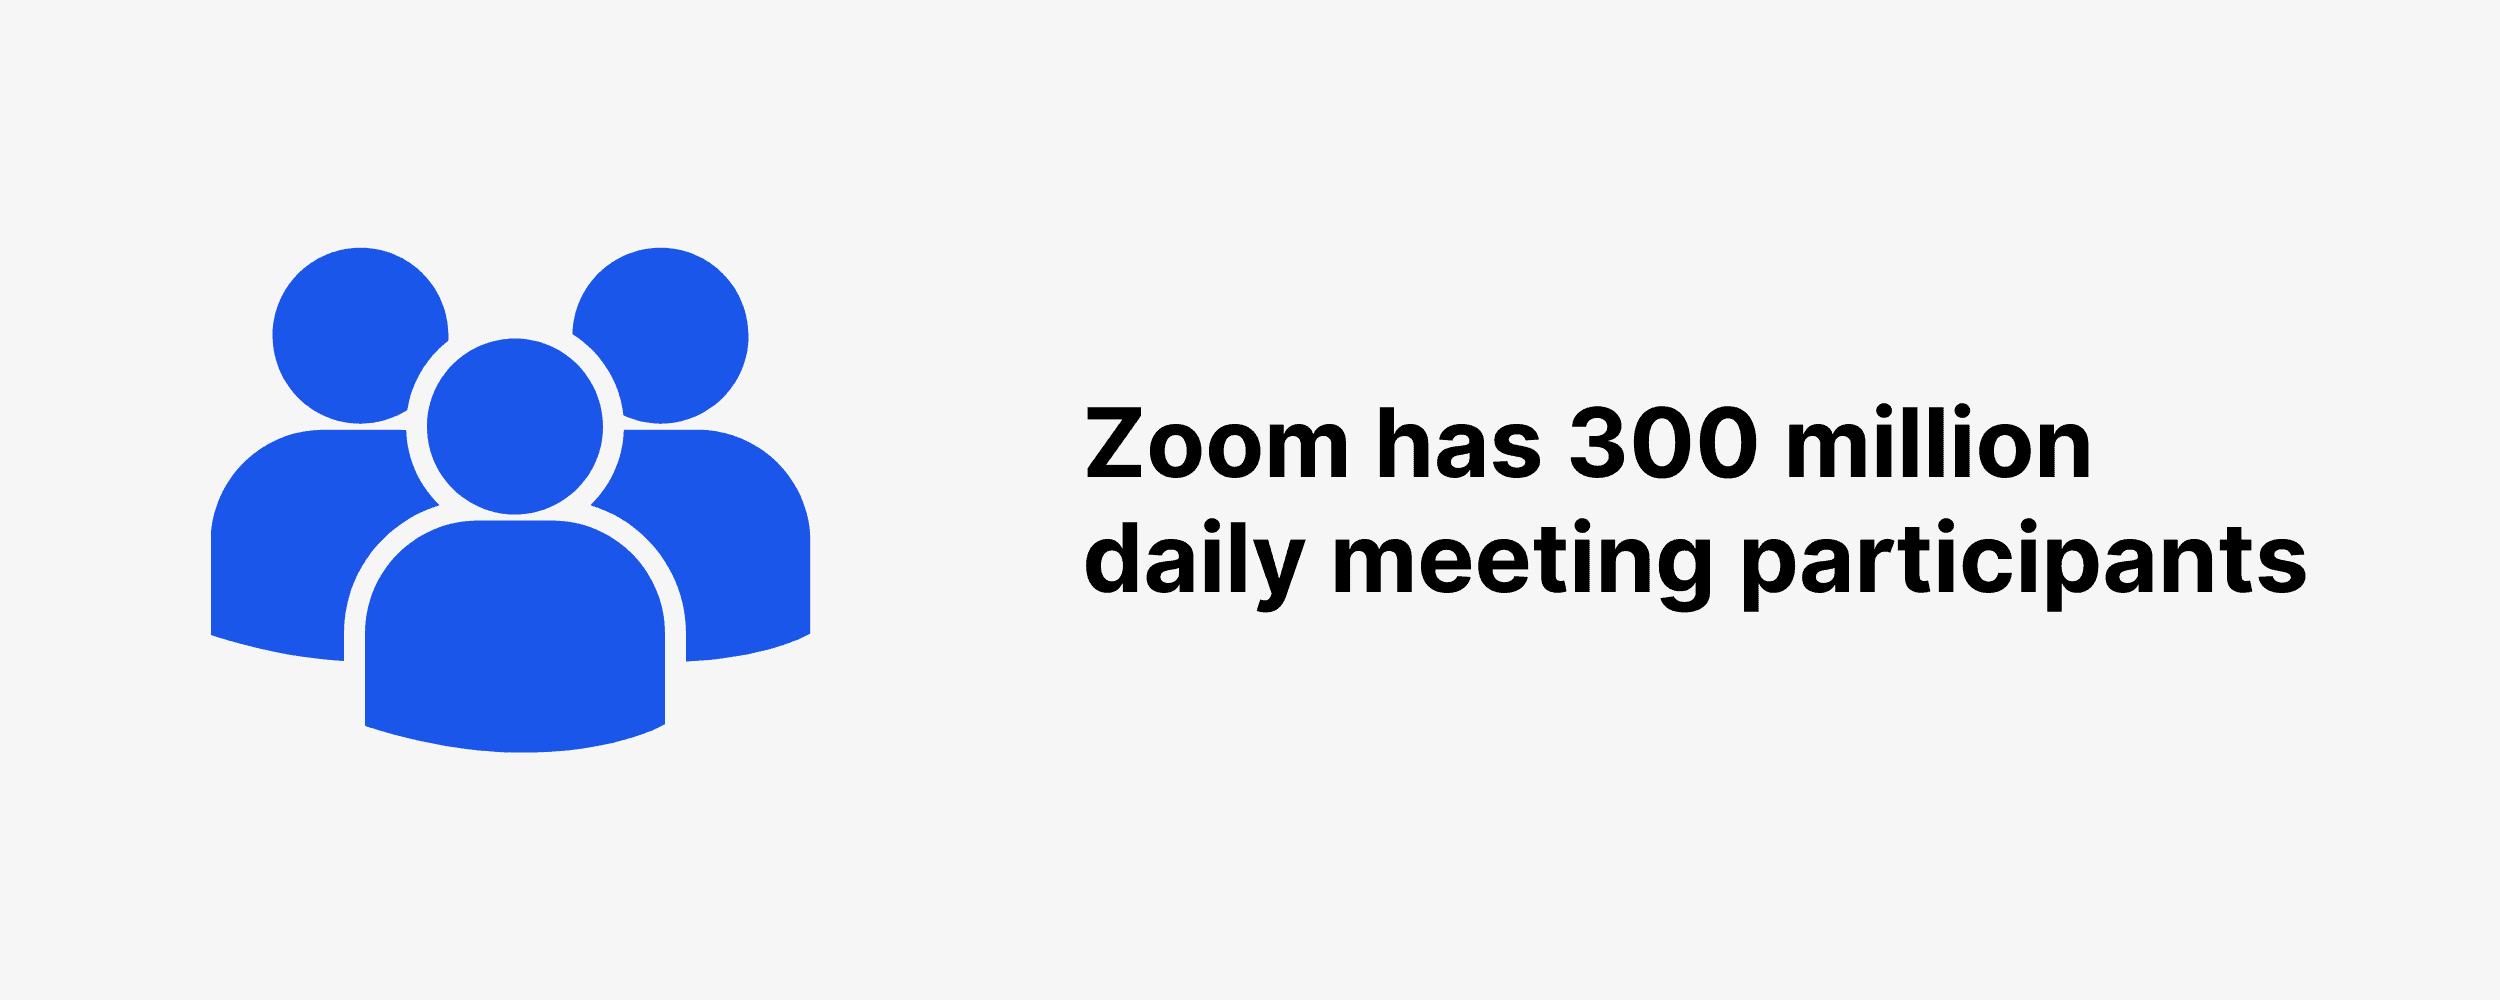 Zoom has 300 million daily meeting participants